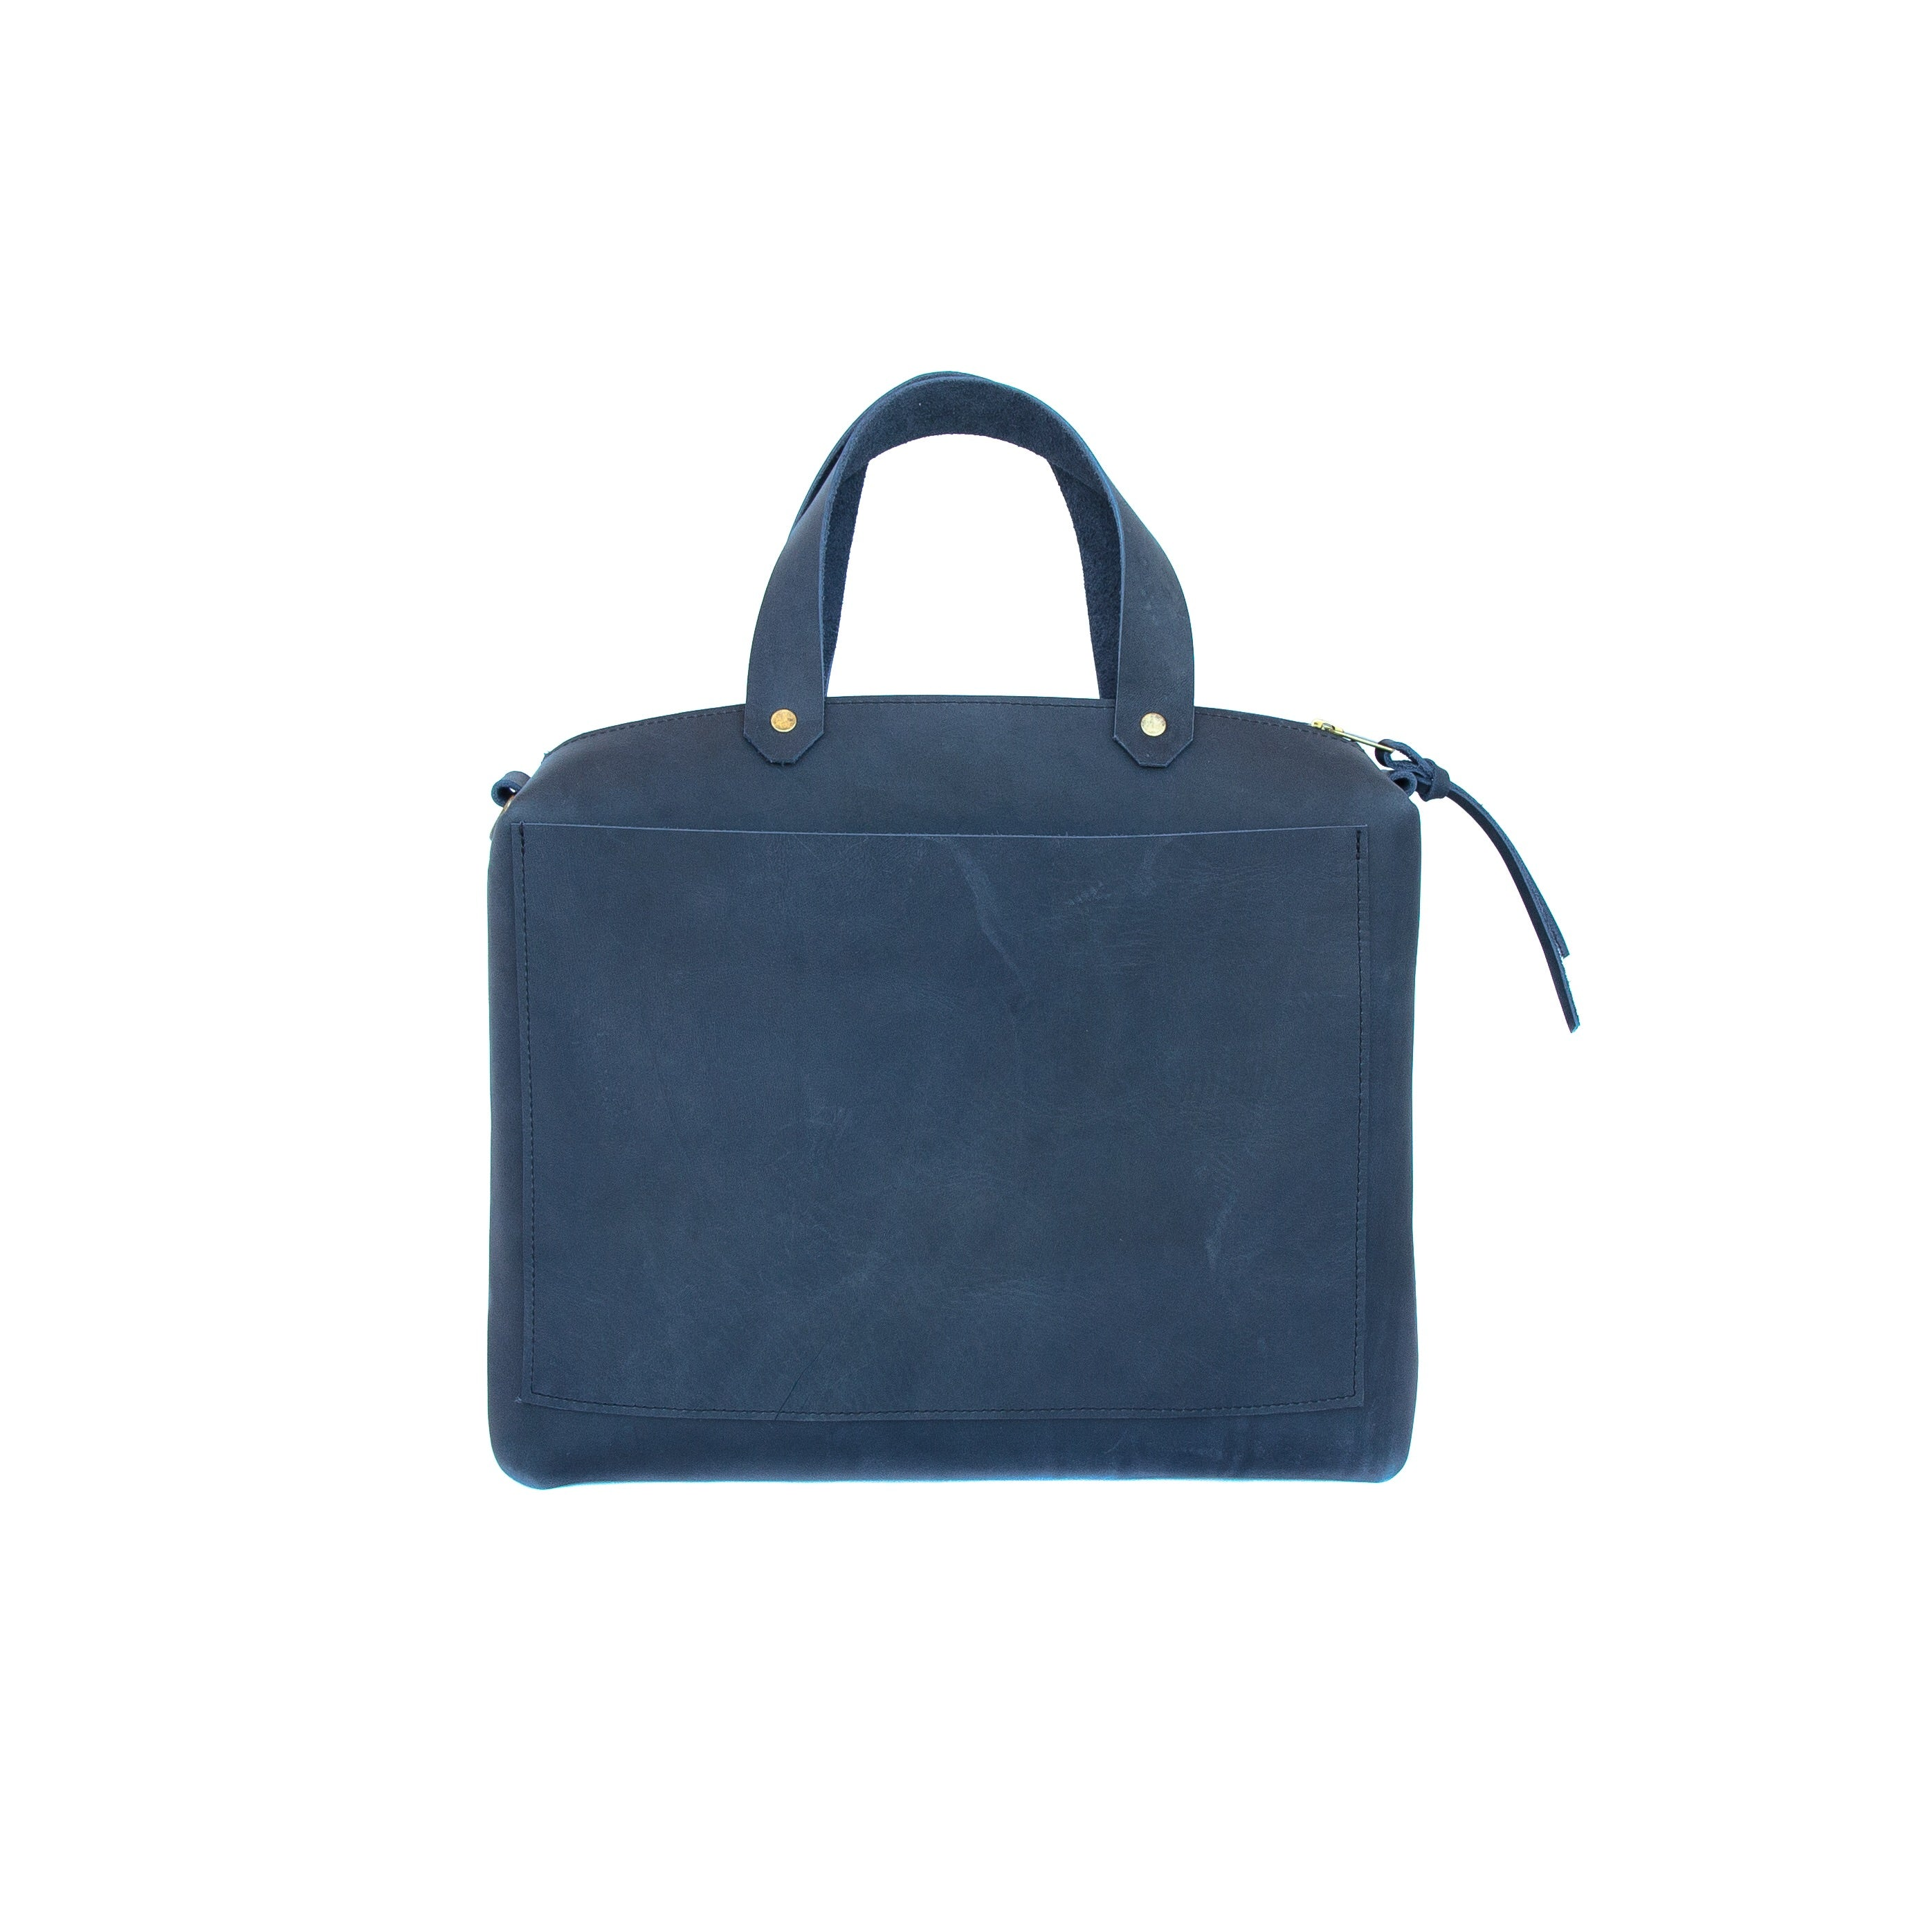 Spy Bag In Navy Leather - handcrafted by Market Canvas Leather in Tofino, BC, Canada